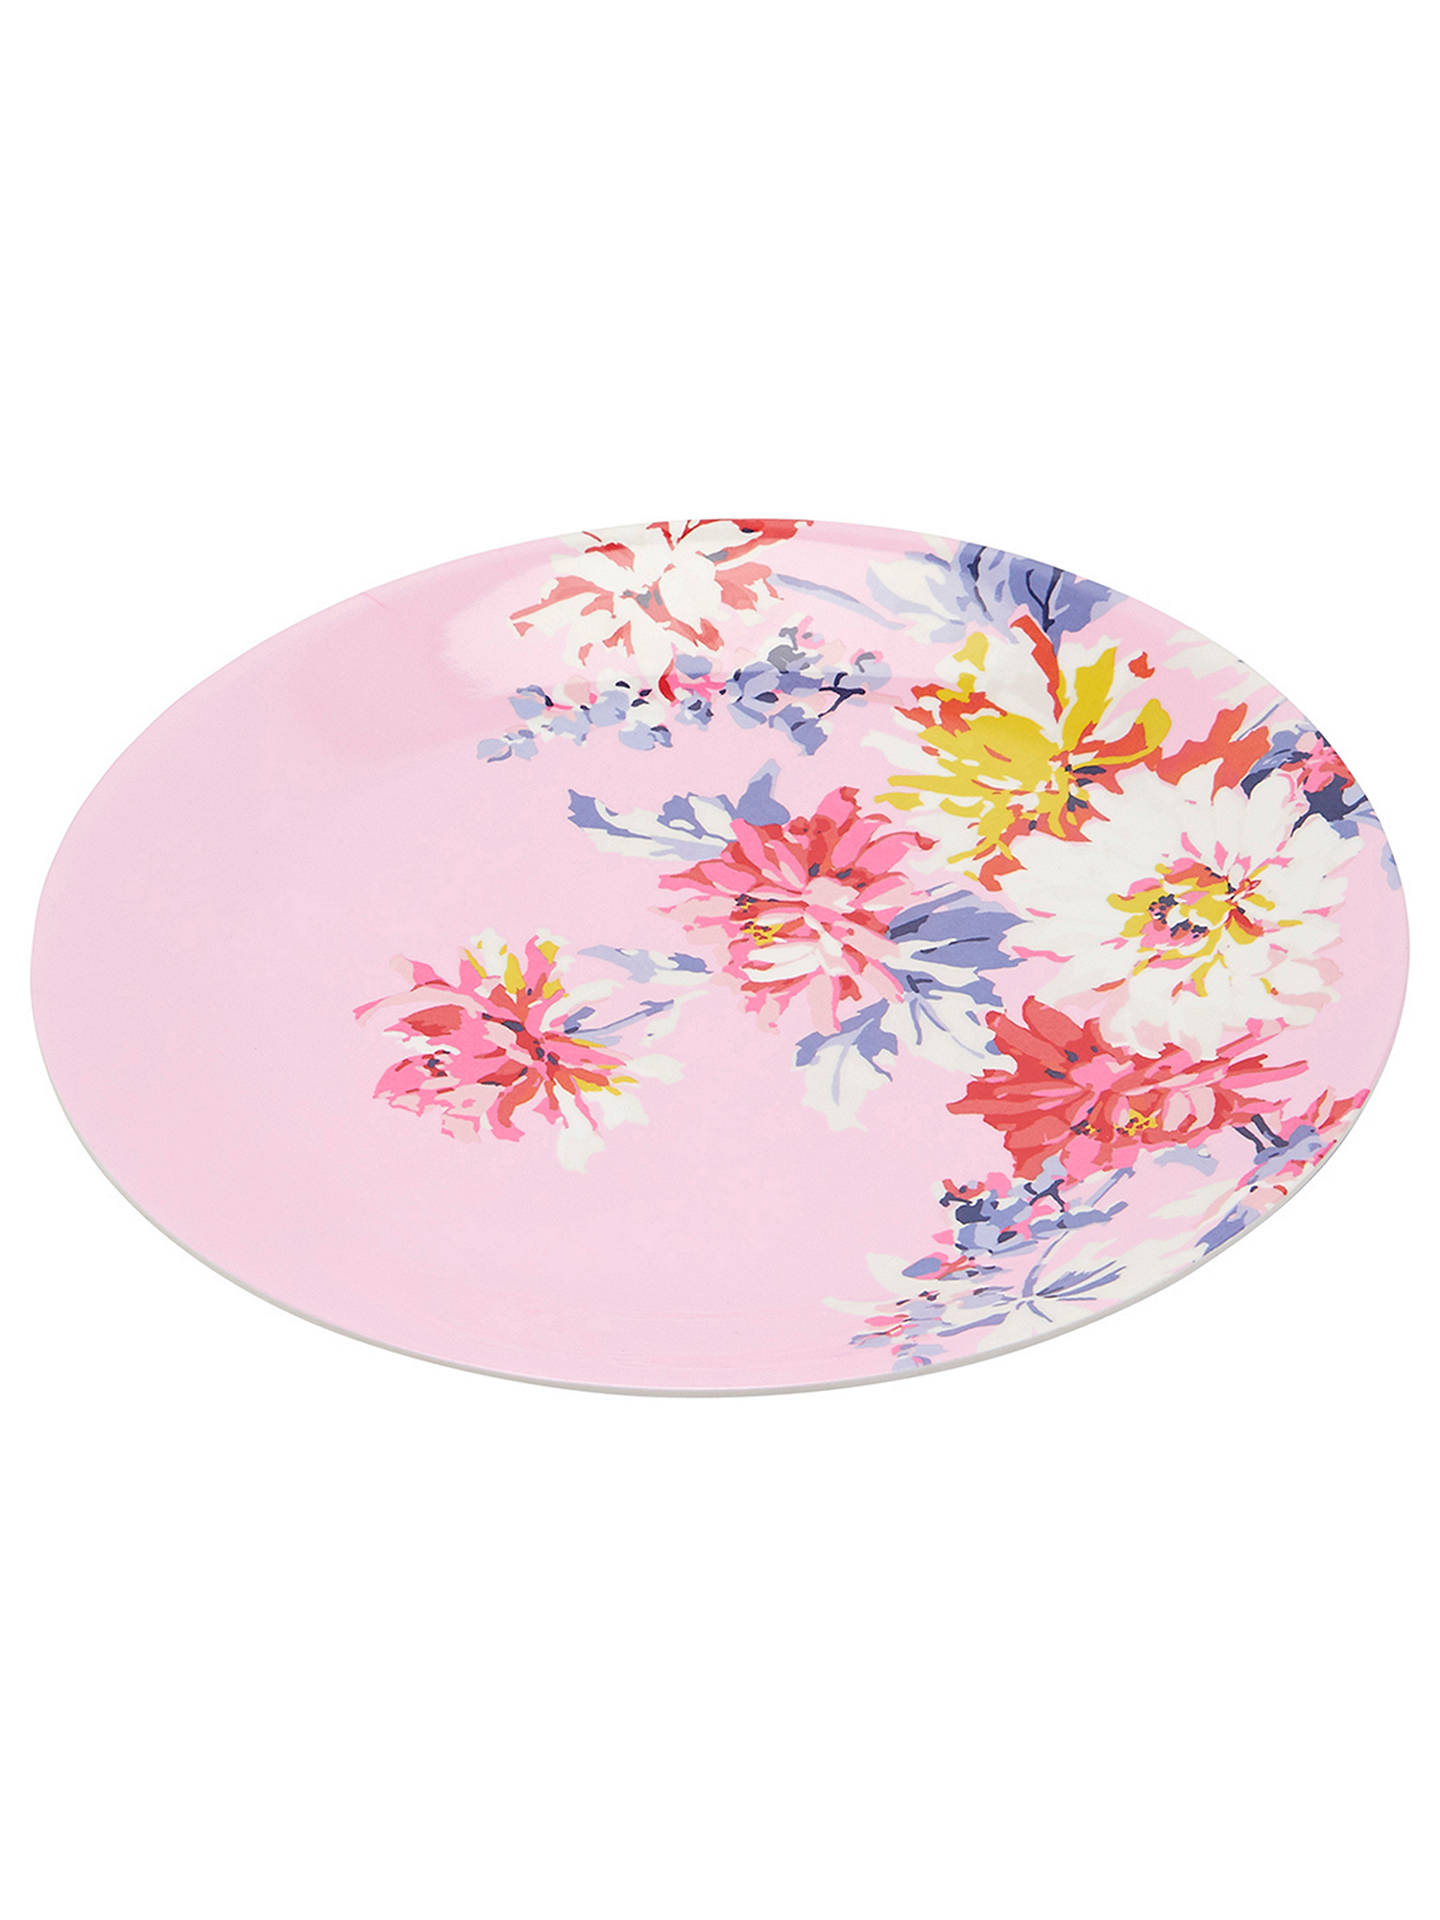 Joules Whitstable Floral Melamine Picnic Plates, Dia 28 5cm, Assorted, Set  of 4